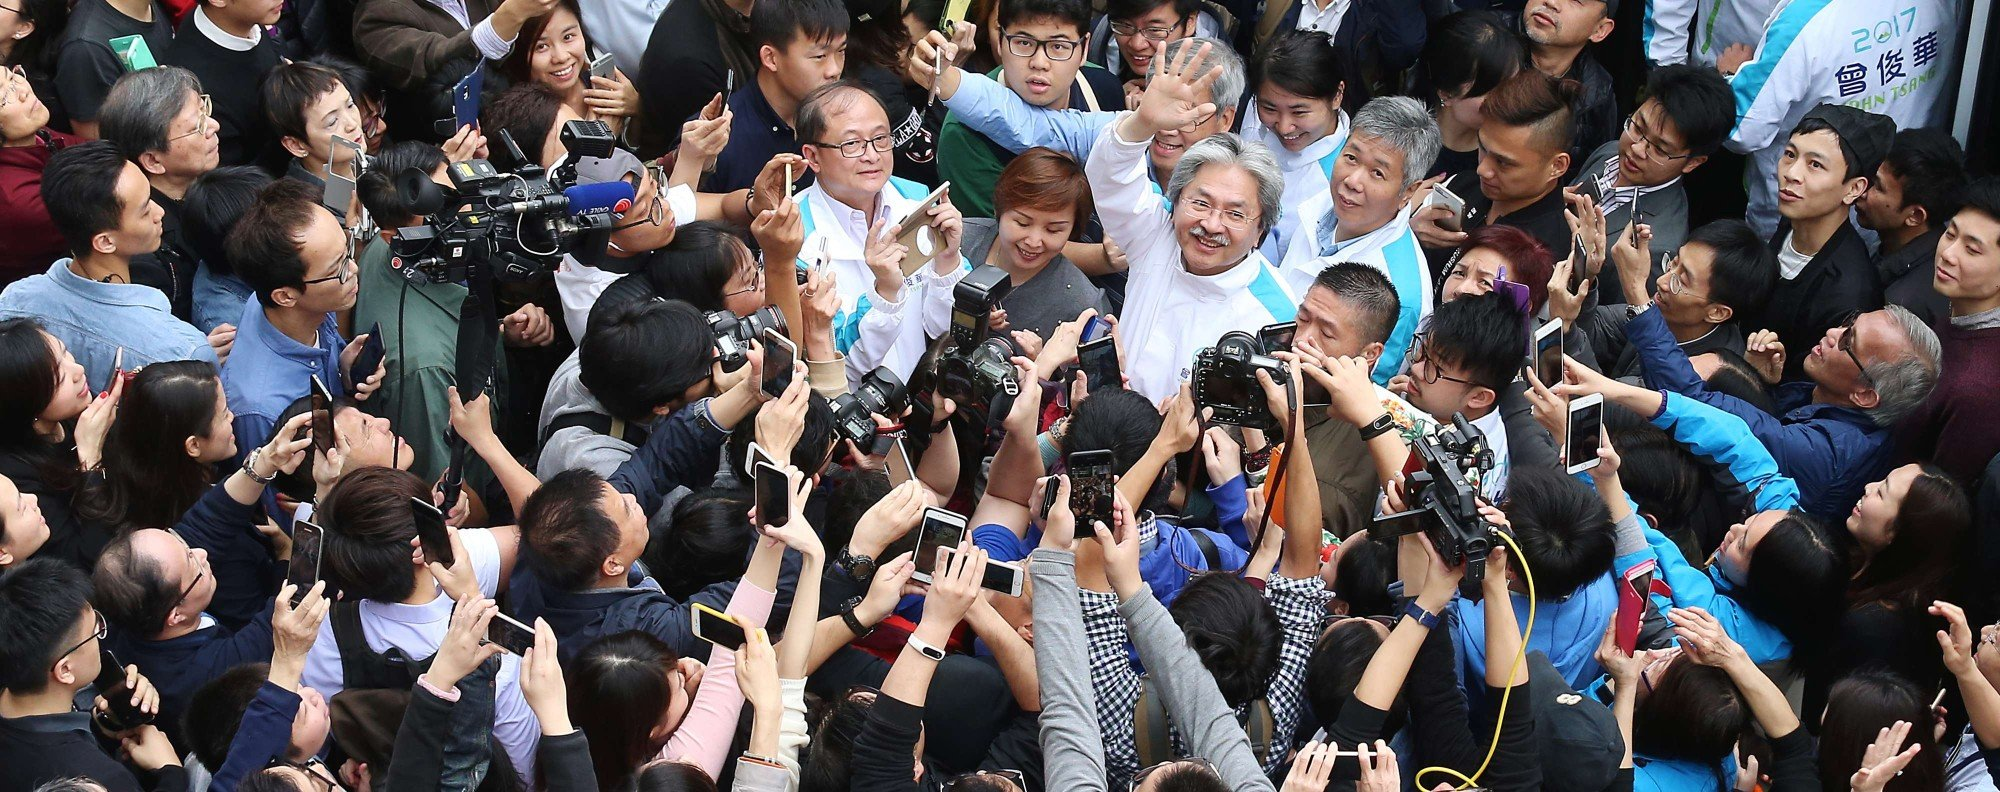 Chief executive candidate John Tsang. Photo: K. Y. Cheng